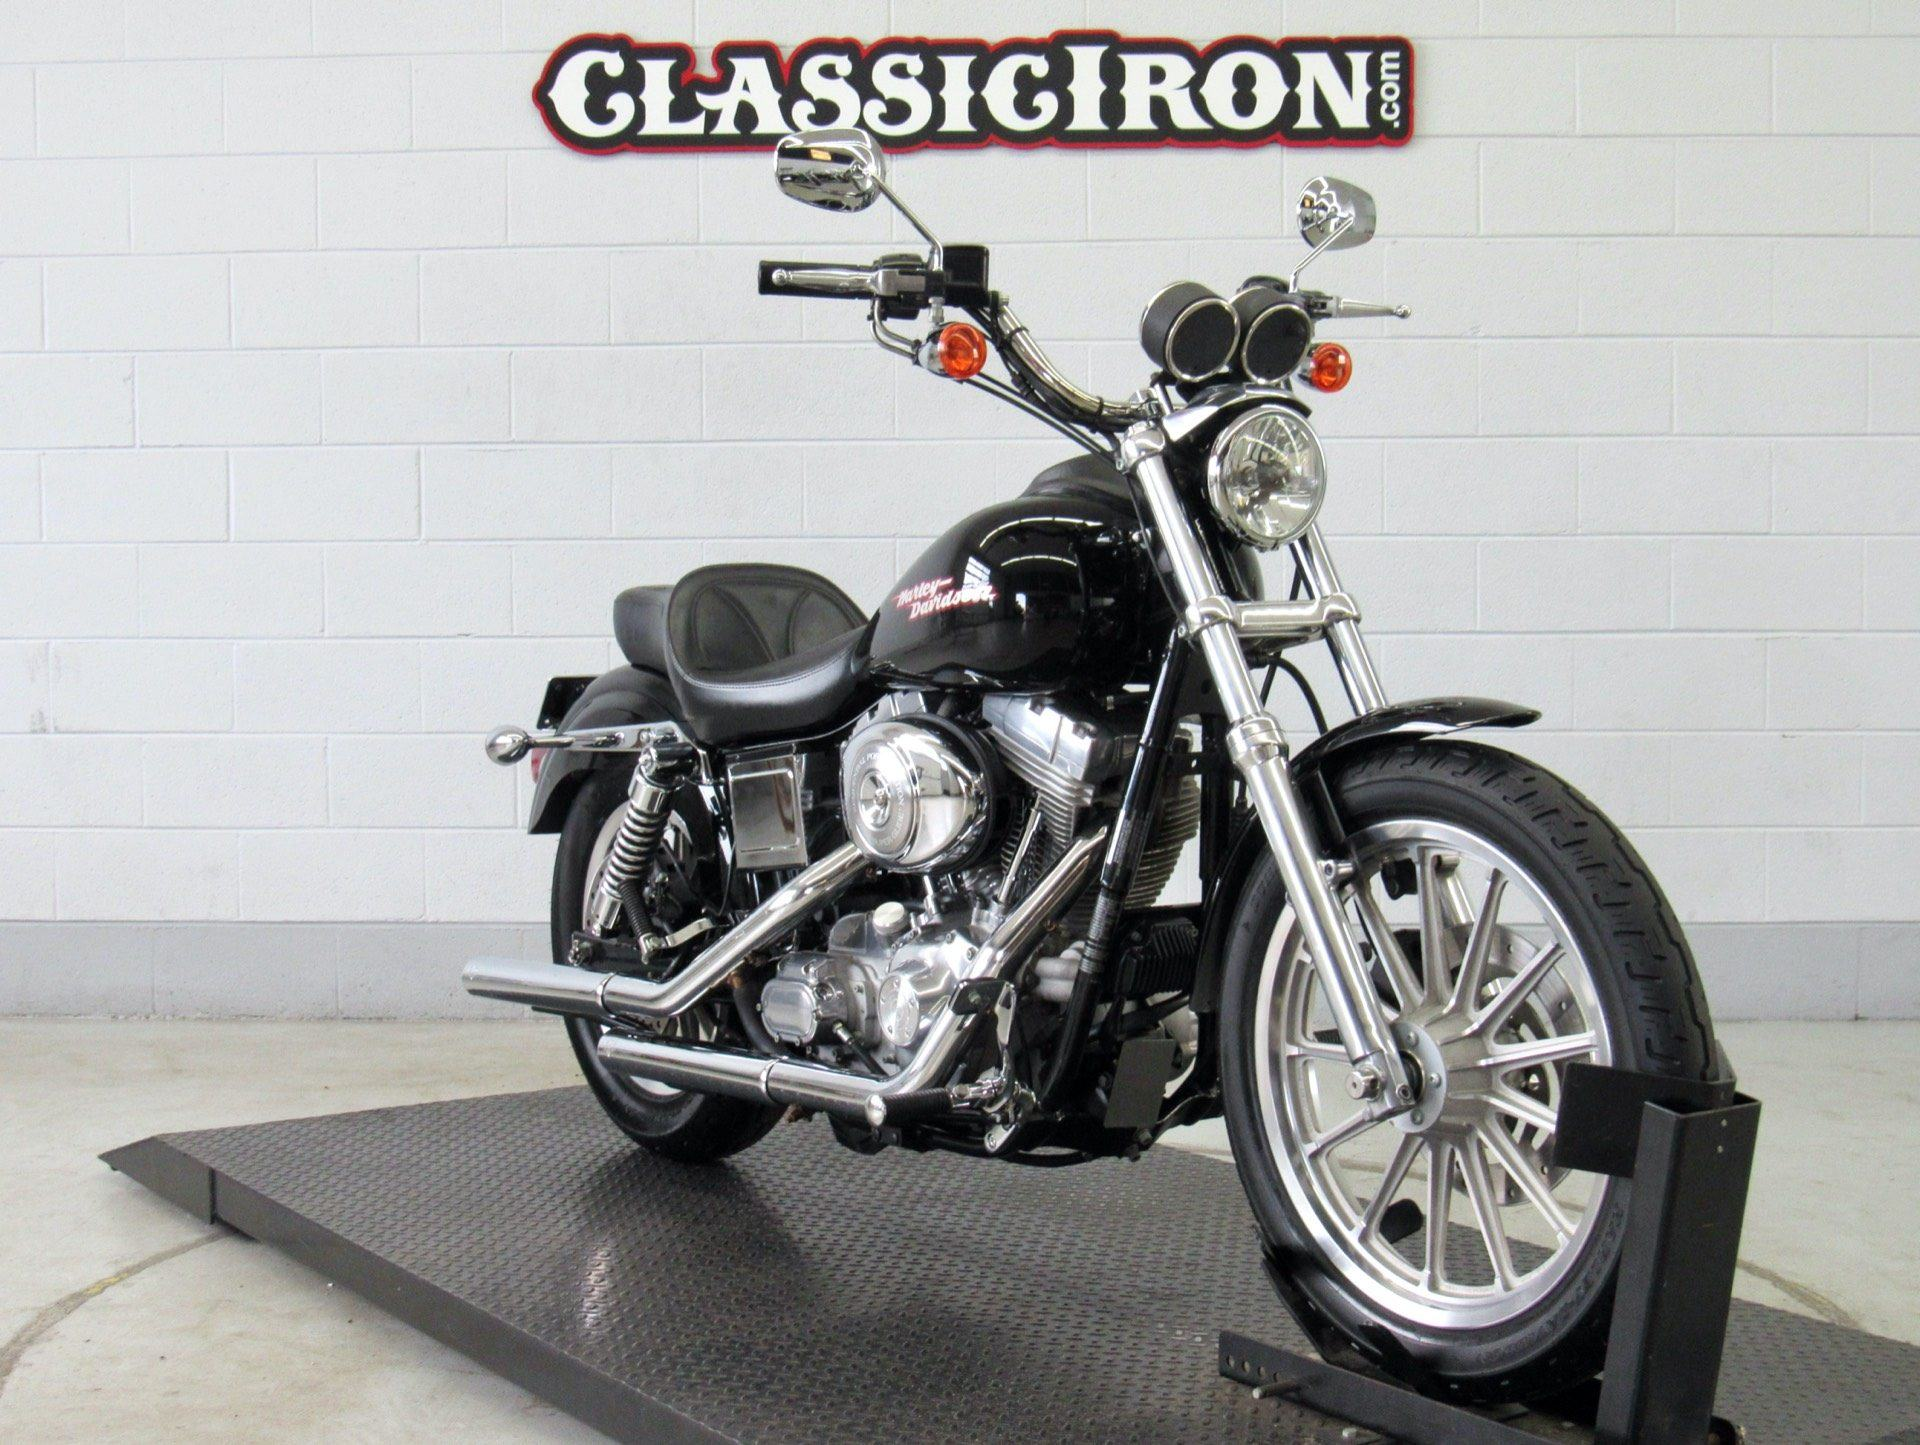 2004 Harley-Davidson FXD/FXDI Dyna Super Glide® in Fredericksburg, Virginia - Photo 2